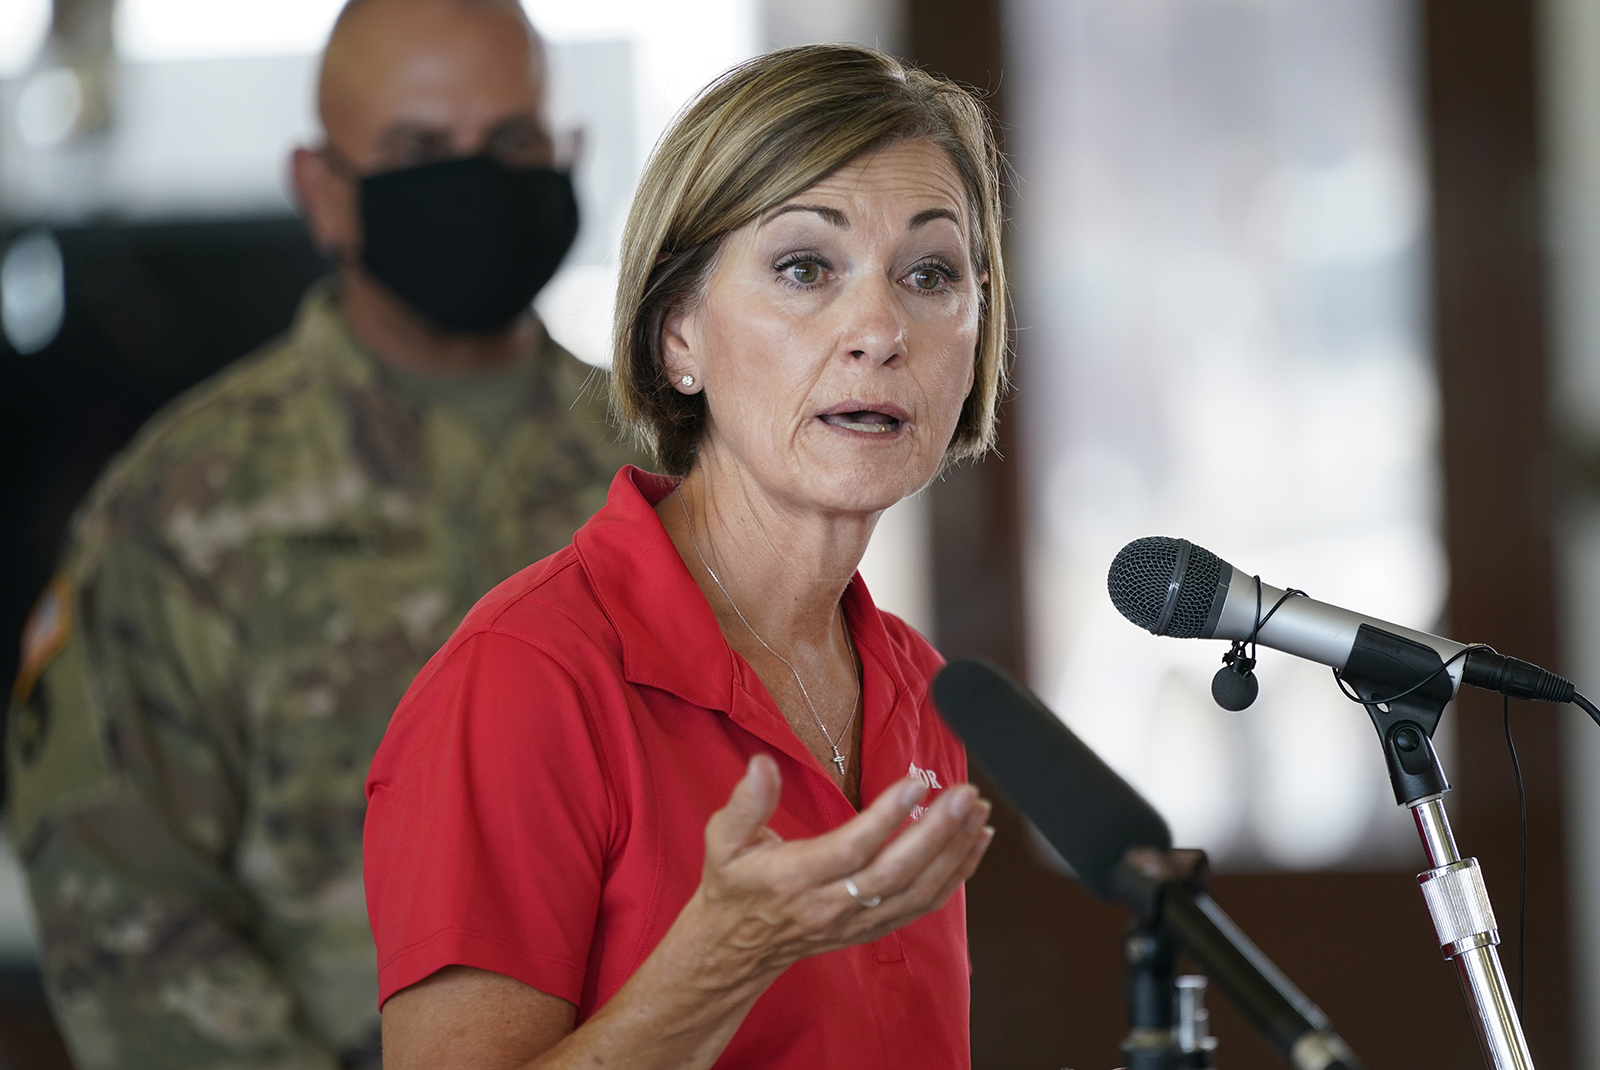 In this Friday, Aug. 14 photo, Iowa Gov. Kim Reynolds speaks during a news conference, in Cedar Rapids, Iowa.